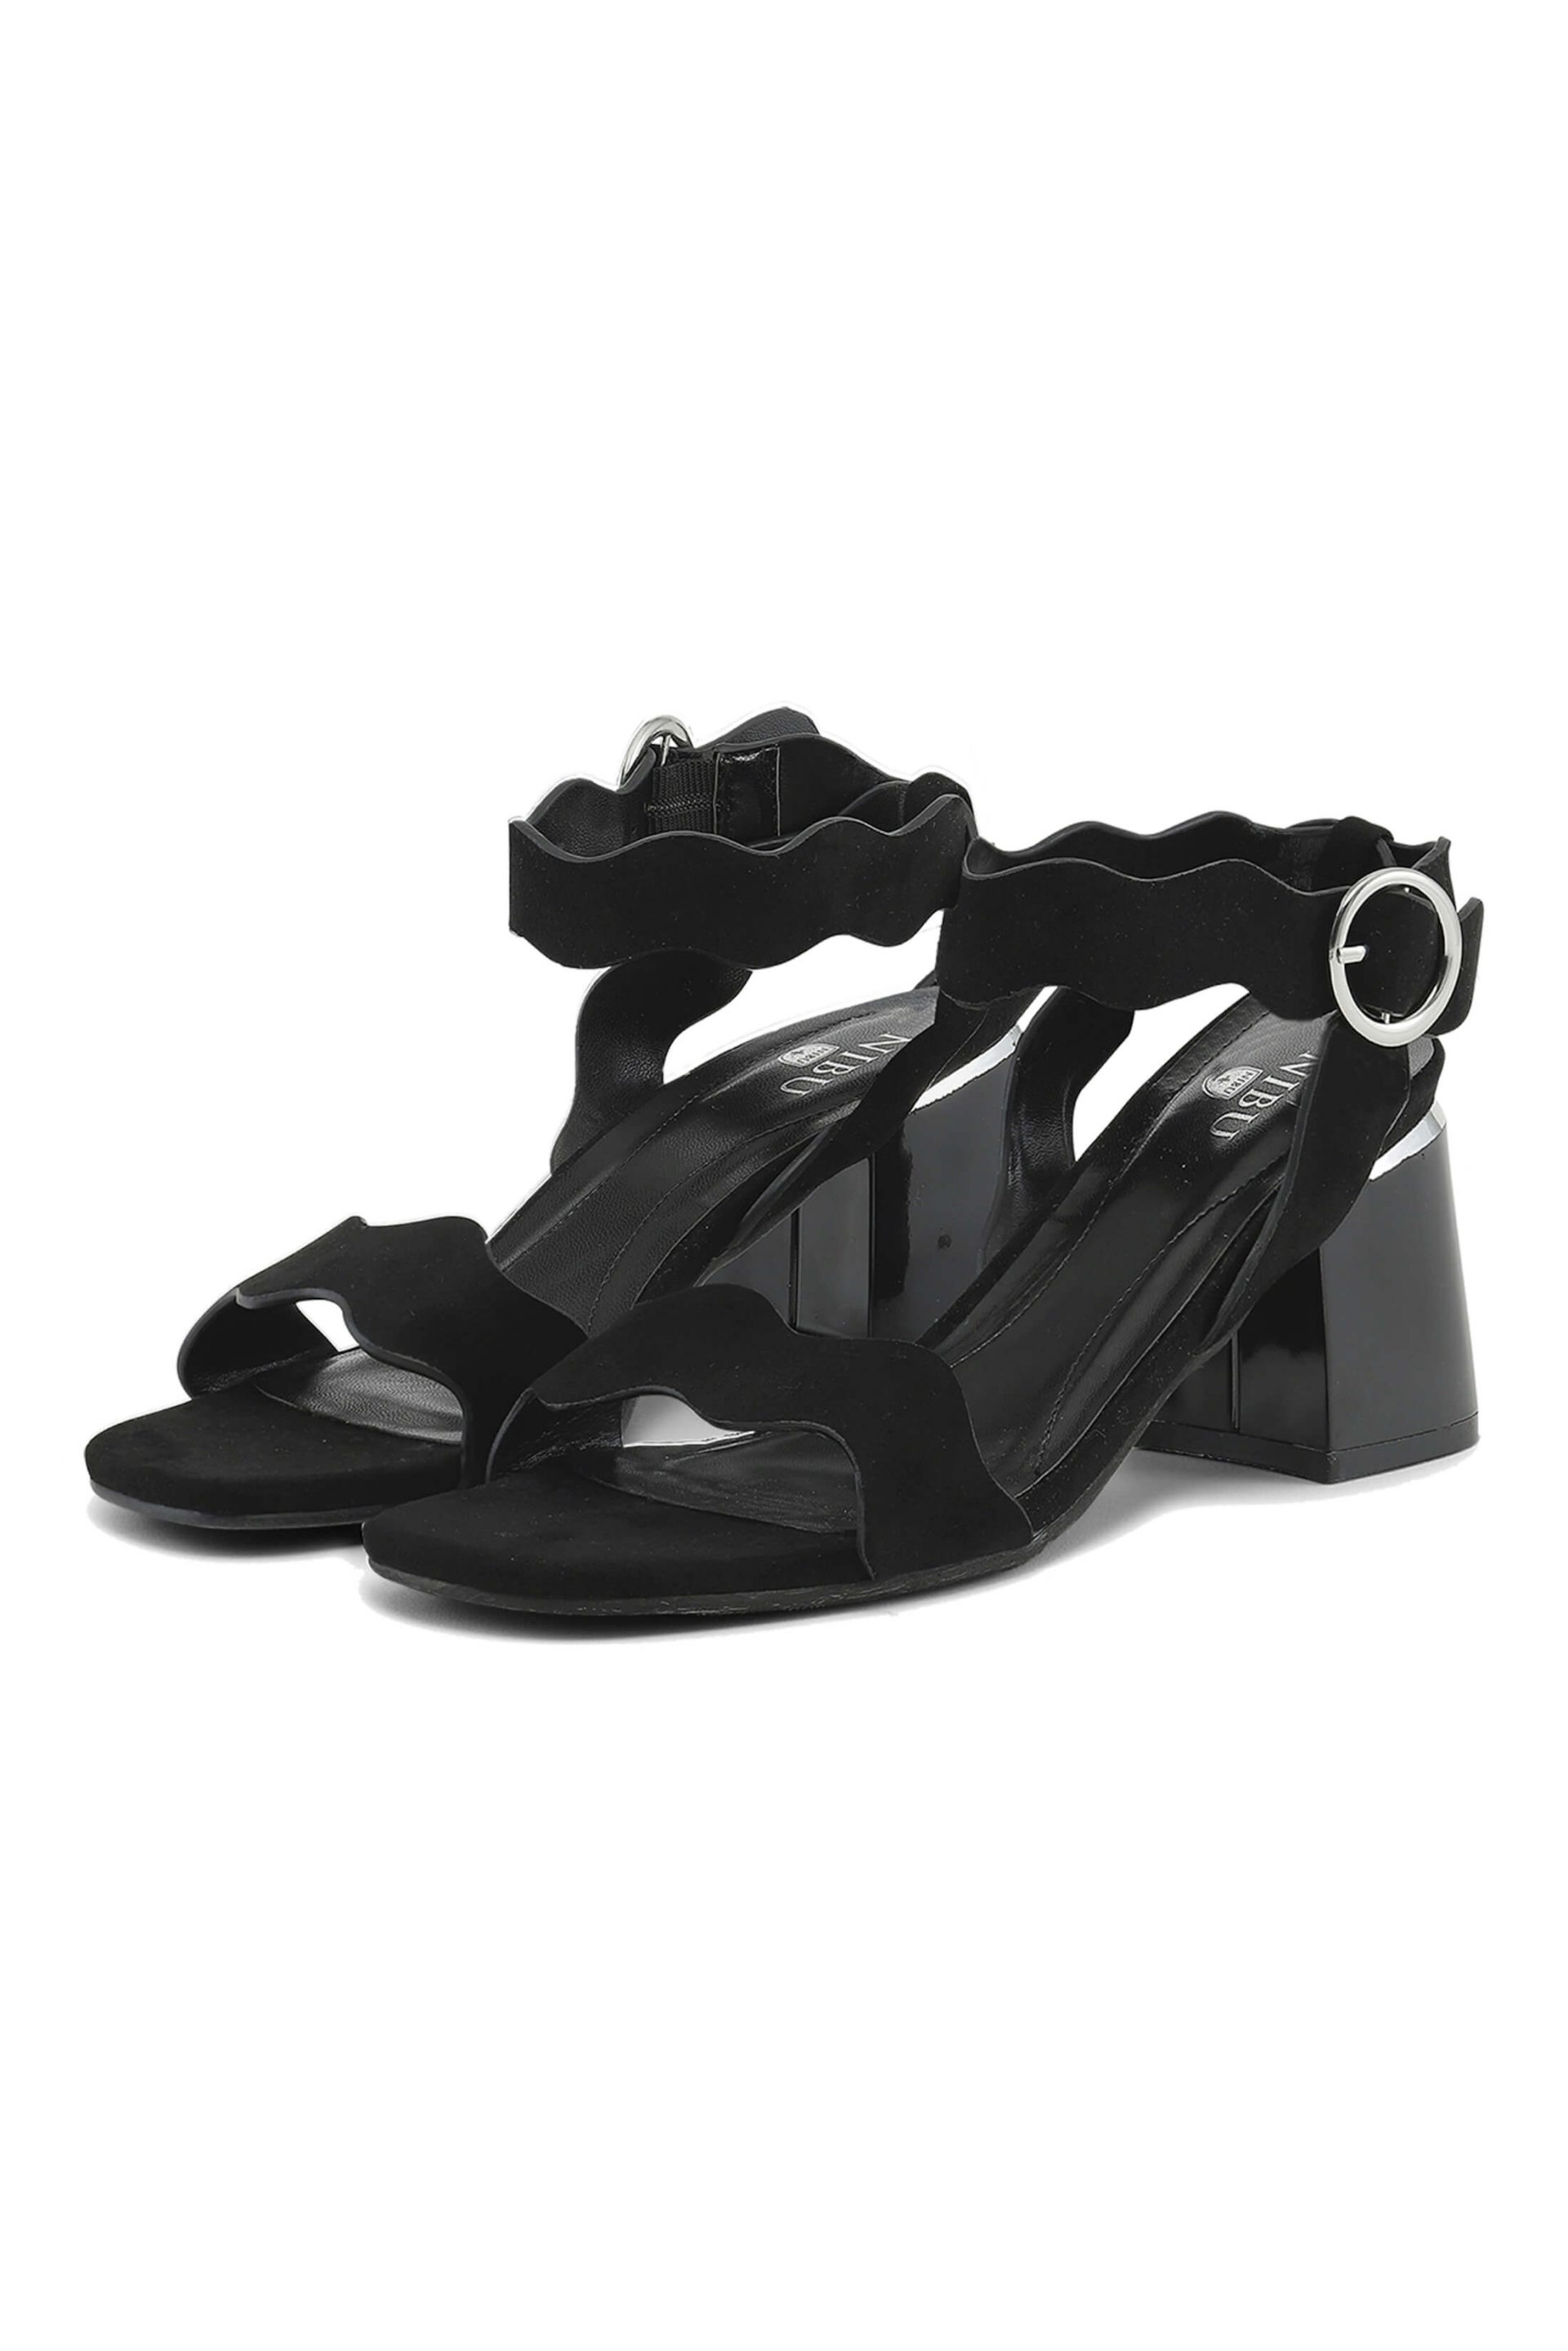 Black sandals with wave band